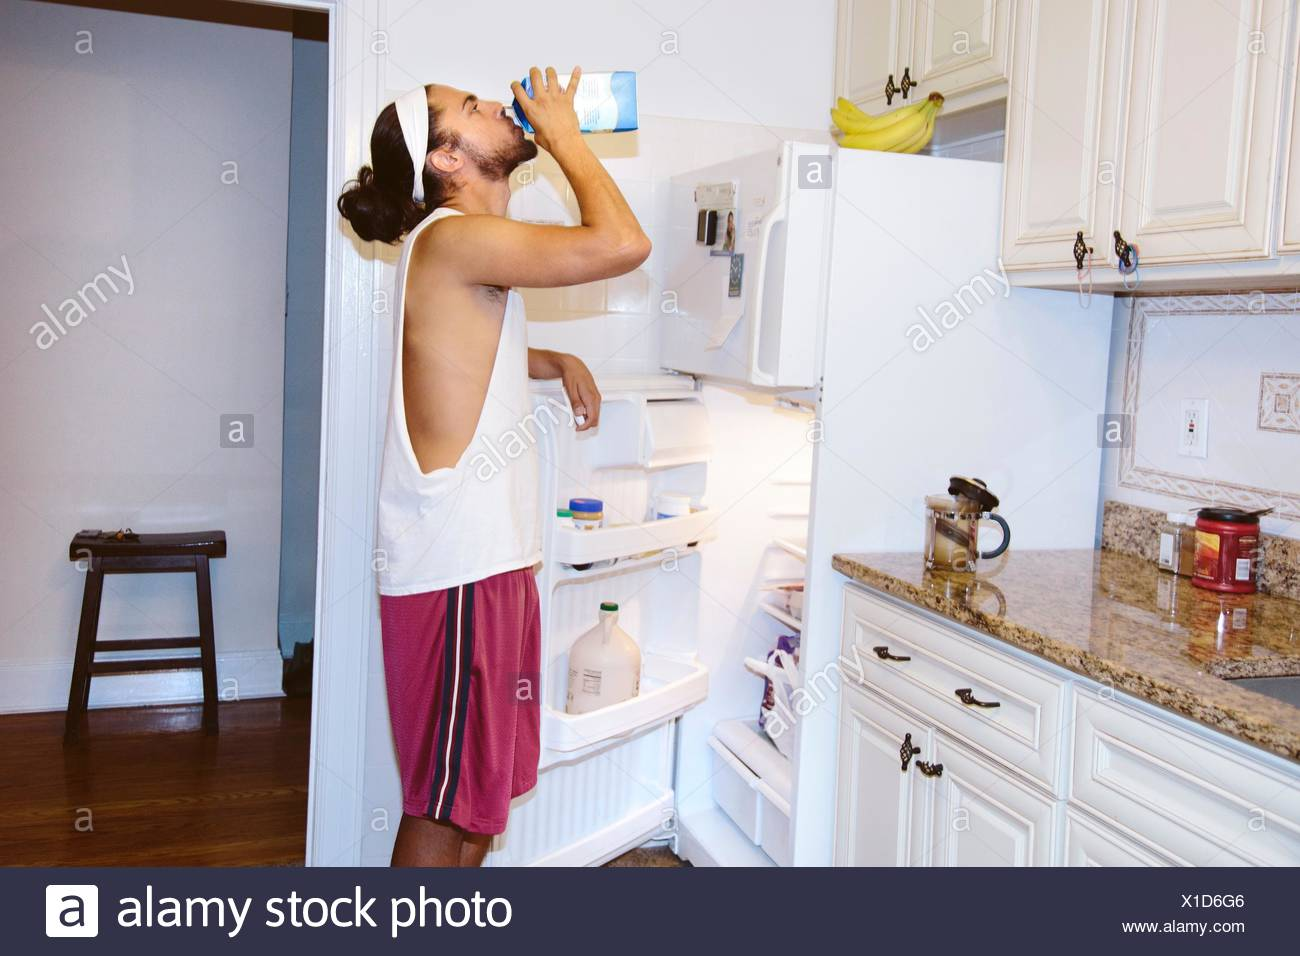 Young man standing next to open fridge, drinking milk from carton - Stock Image